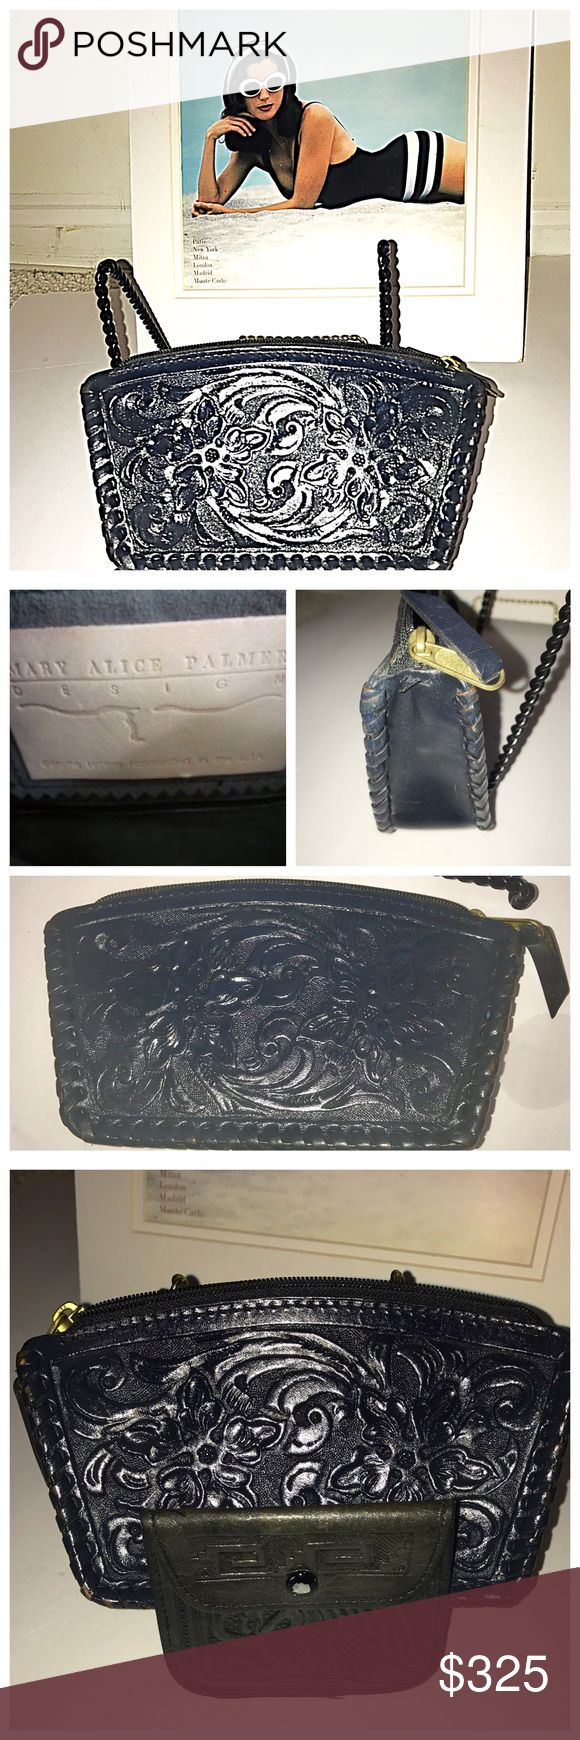 VINTAGE MARY ALICE PALMER NAVY CLUTCH, Very Rare You will love this vintage Mary Alice Palmer navy Tooled clutch in her famous design. This item is impossible to fine in this like new condition. i have added a coin purse which is in black . This is a great find Mary Alice Palmer Bags Clutches & Wristlets